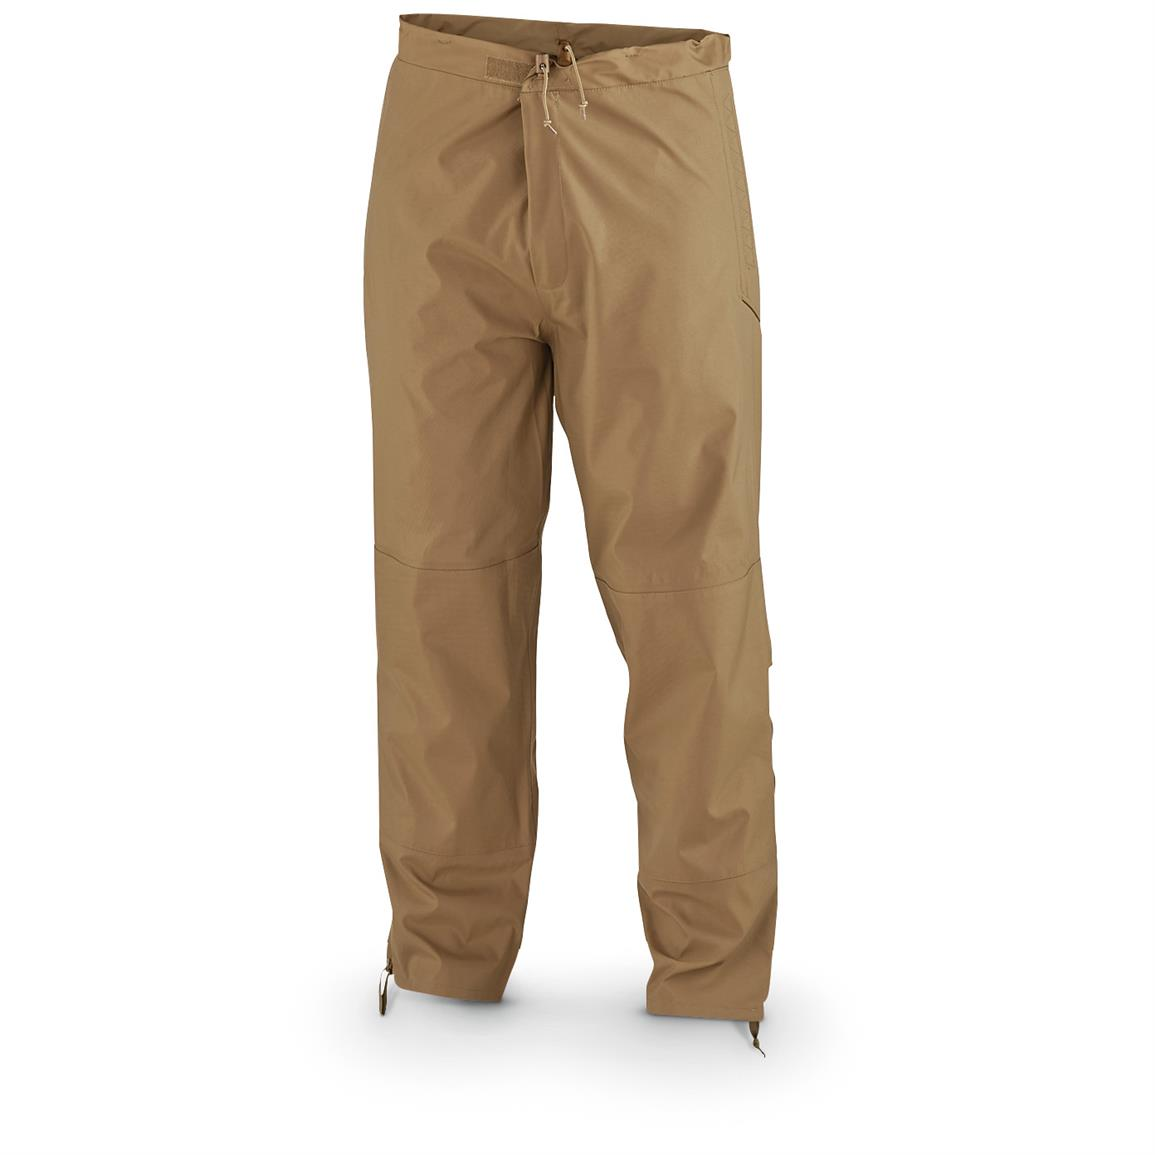 Voodoo Tactical ECW Waterproof Pants, Coyote Tan